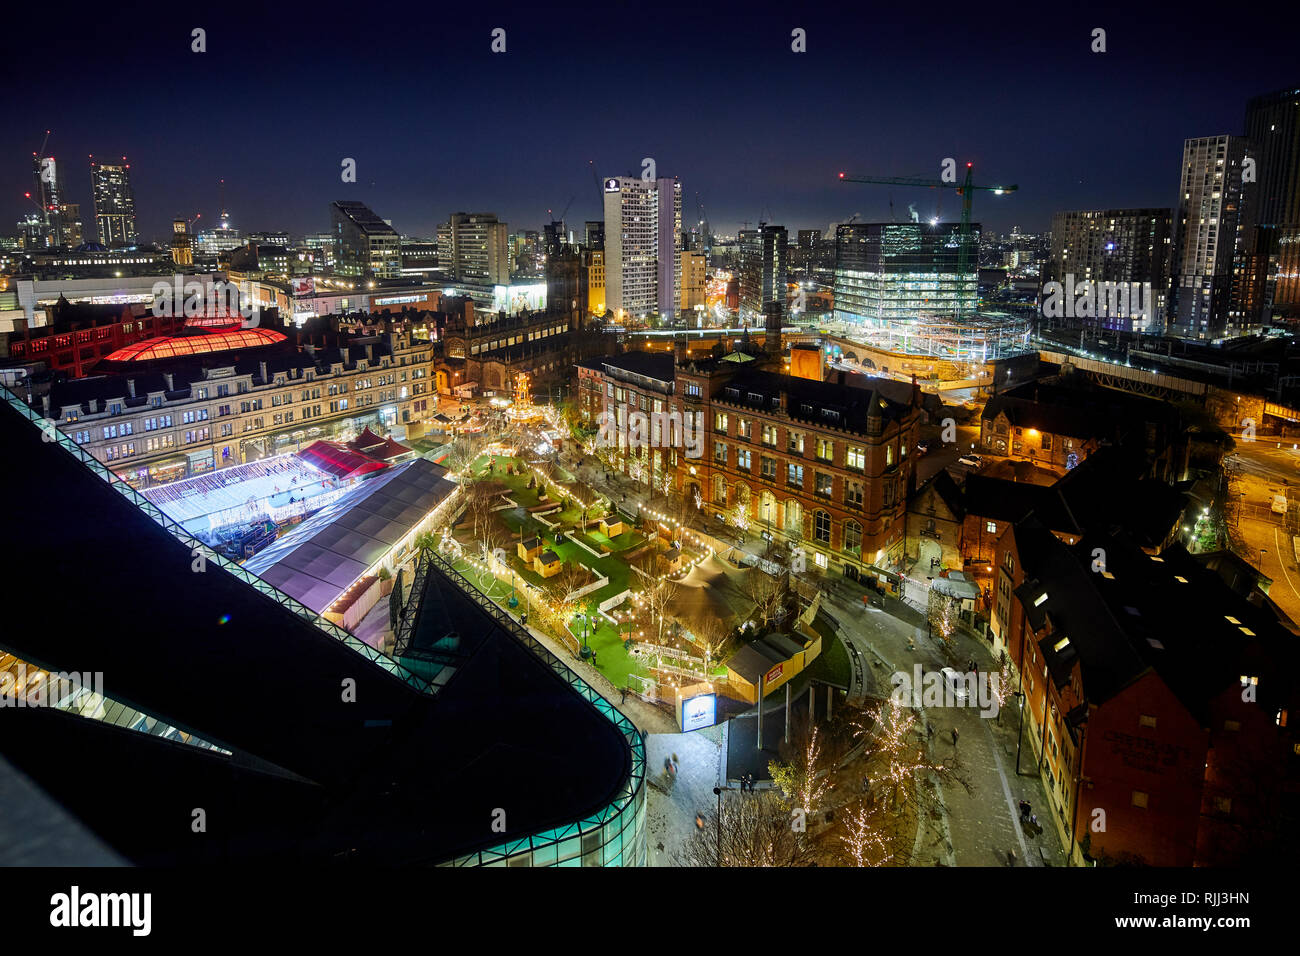 Manchester city centre skyline view across the rooftops from Hotel Indigo showing Urbis, Cathedral gardens, Corn Exchange - Stock Image